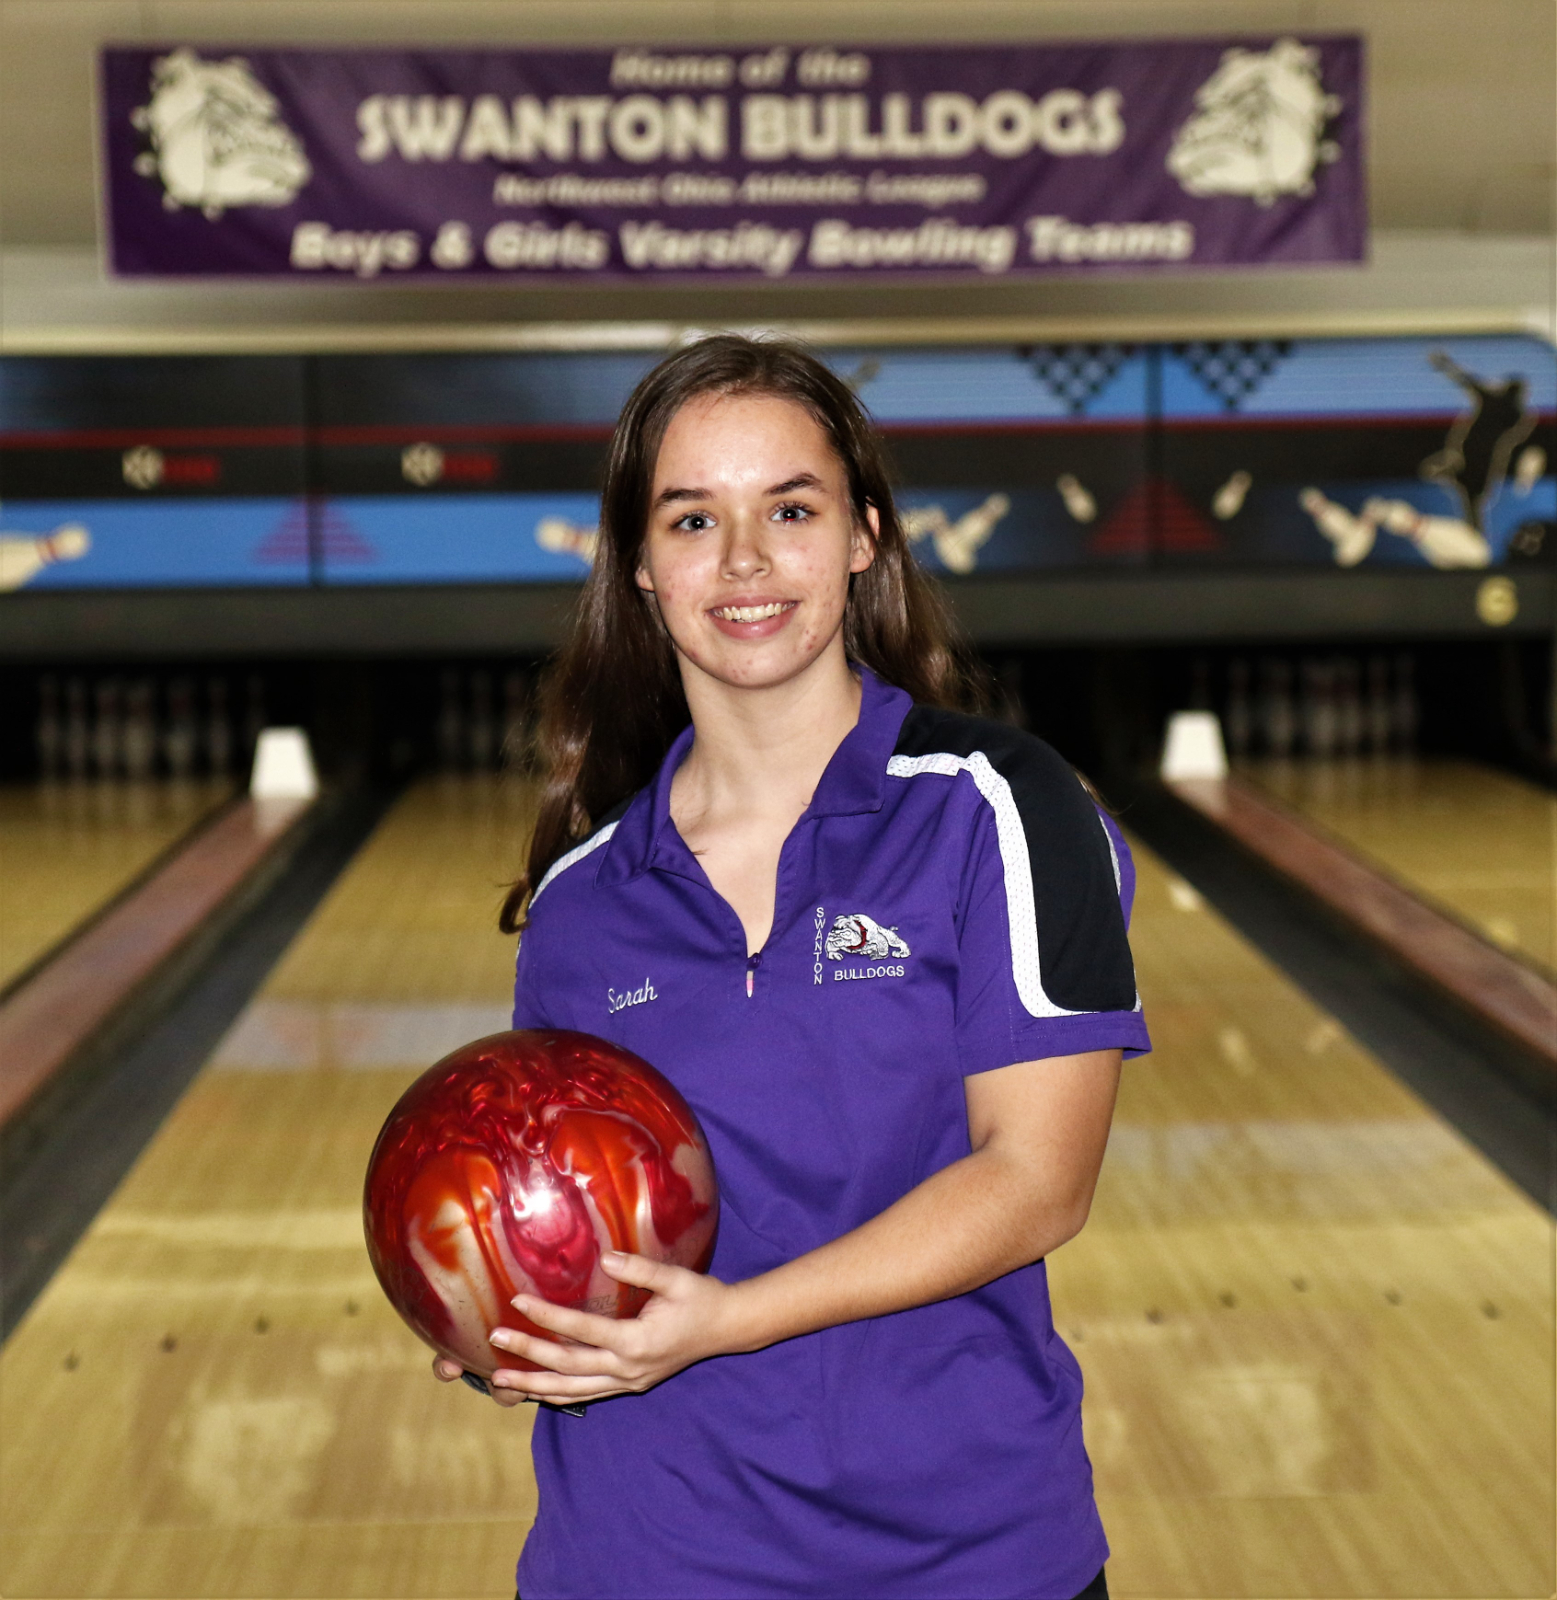 Sarah Kohlhofer rolled games of 157 and 194 for a match leading 351 series as the Swanton Lady Bulldogs topped the Evergreen Lady Vikings 2073-1901. Amy Lawson added a 163+160=323 series and Hannah Patch finished with a 181+130=311 series in the victory.  Attachments area